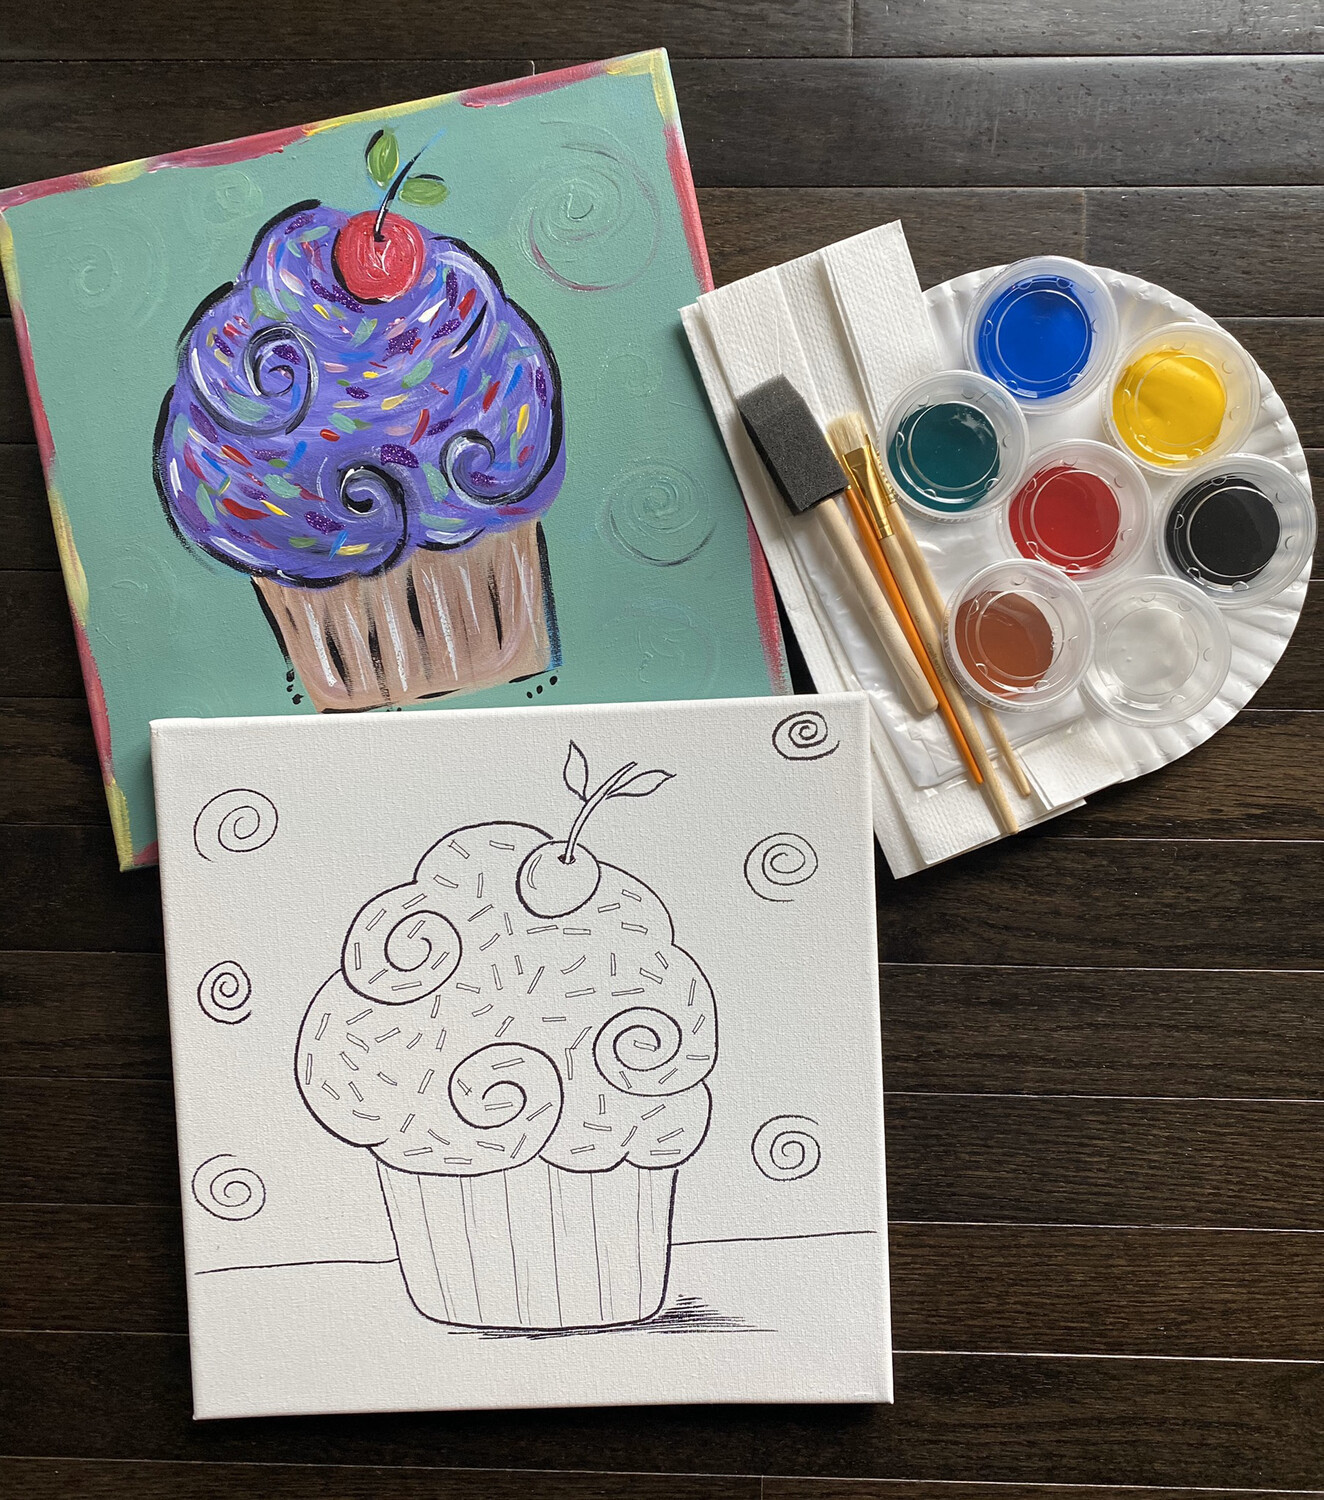 Cupcake At Home Art Kit 12x12 canvas